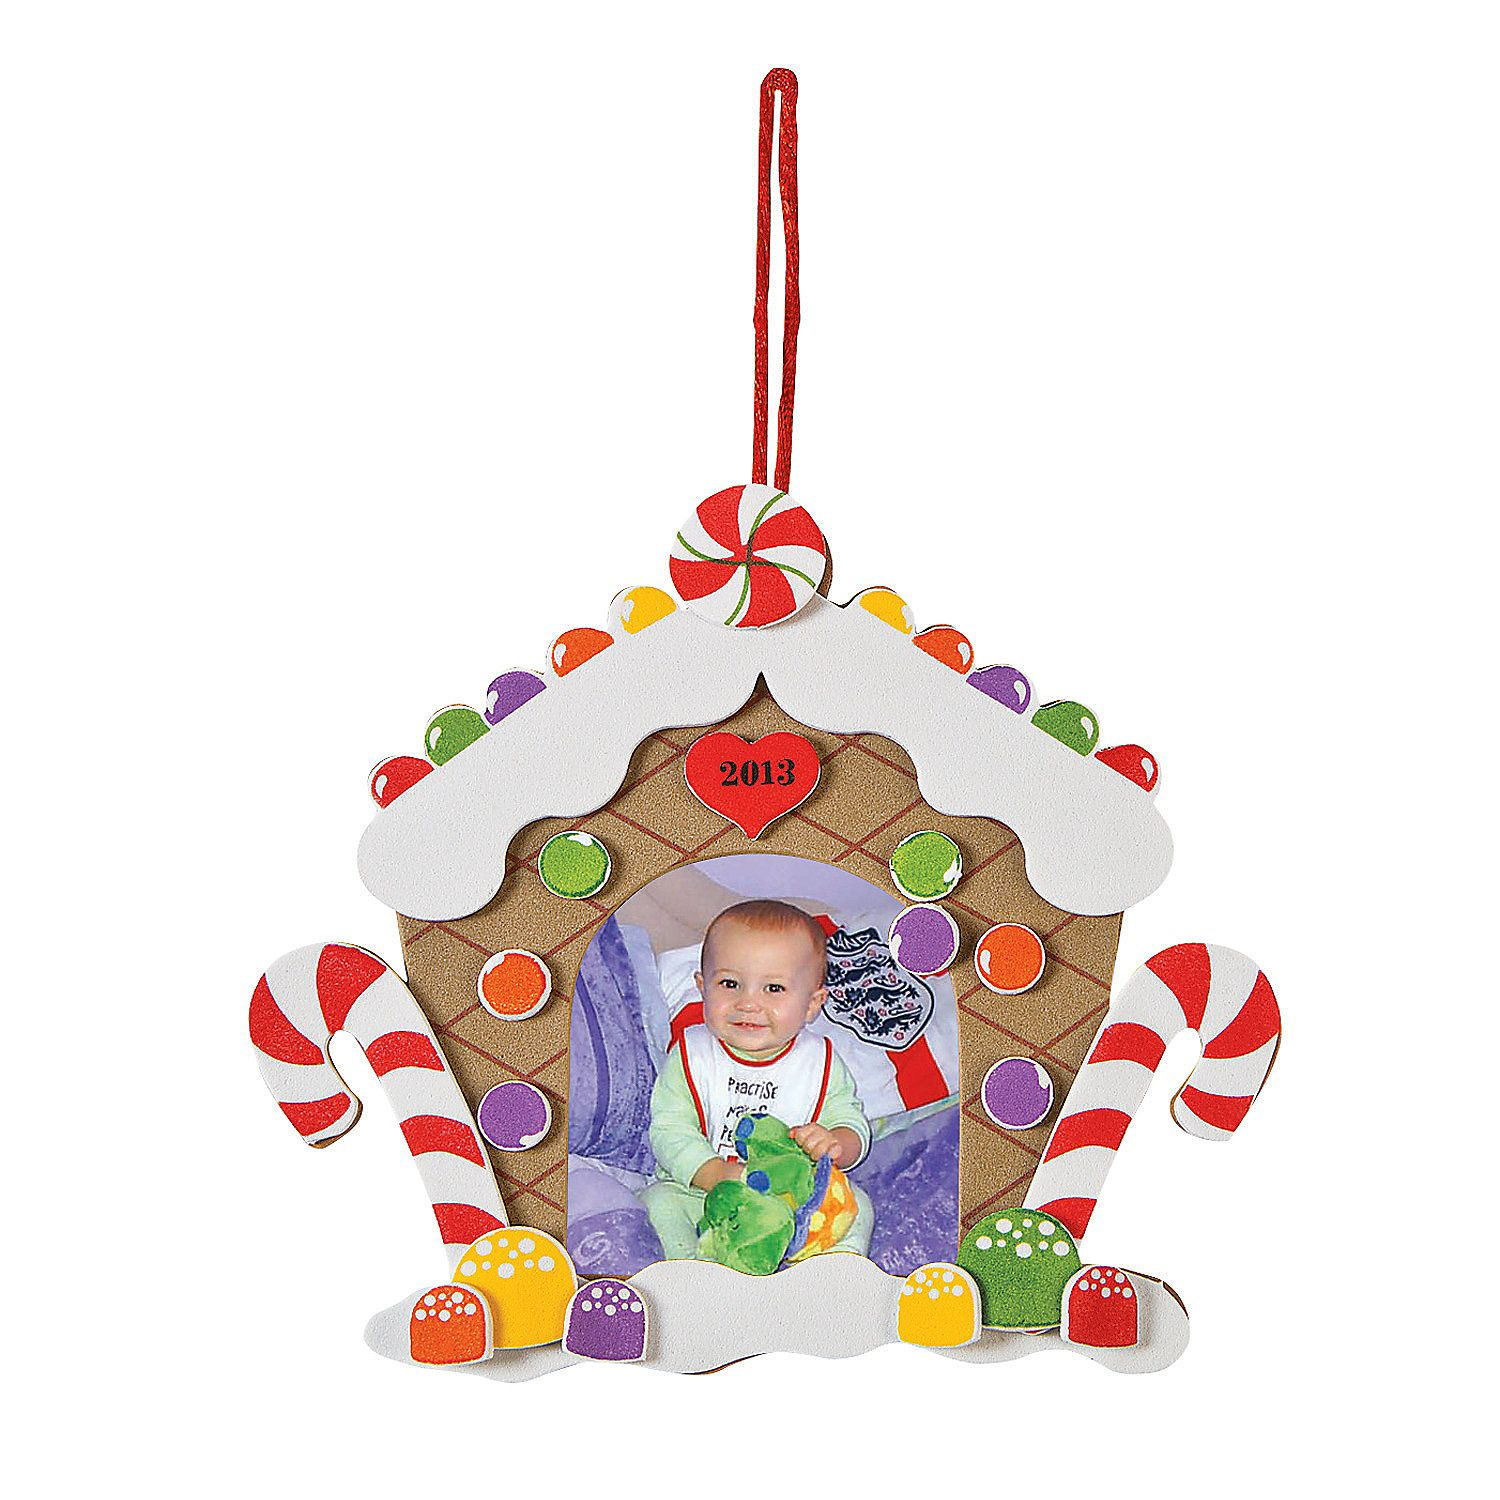 """This """"2013"""" Gingerbread House Photo Frame Ornament Craft"""